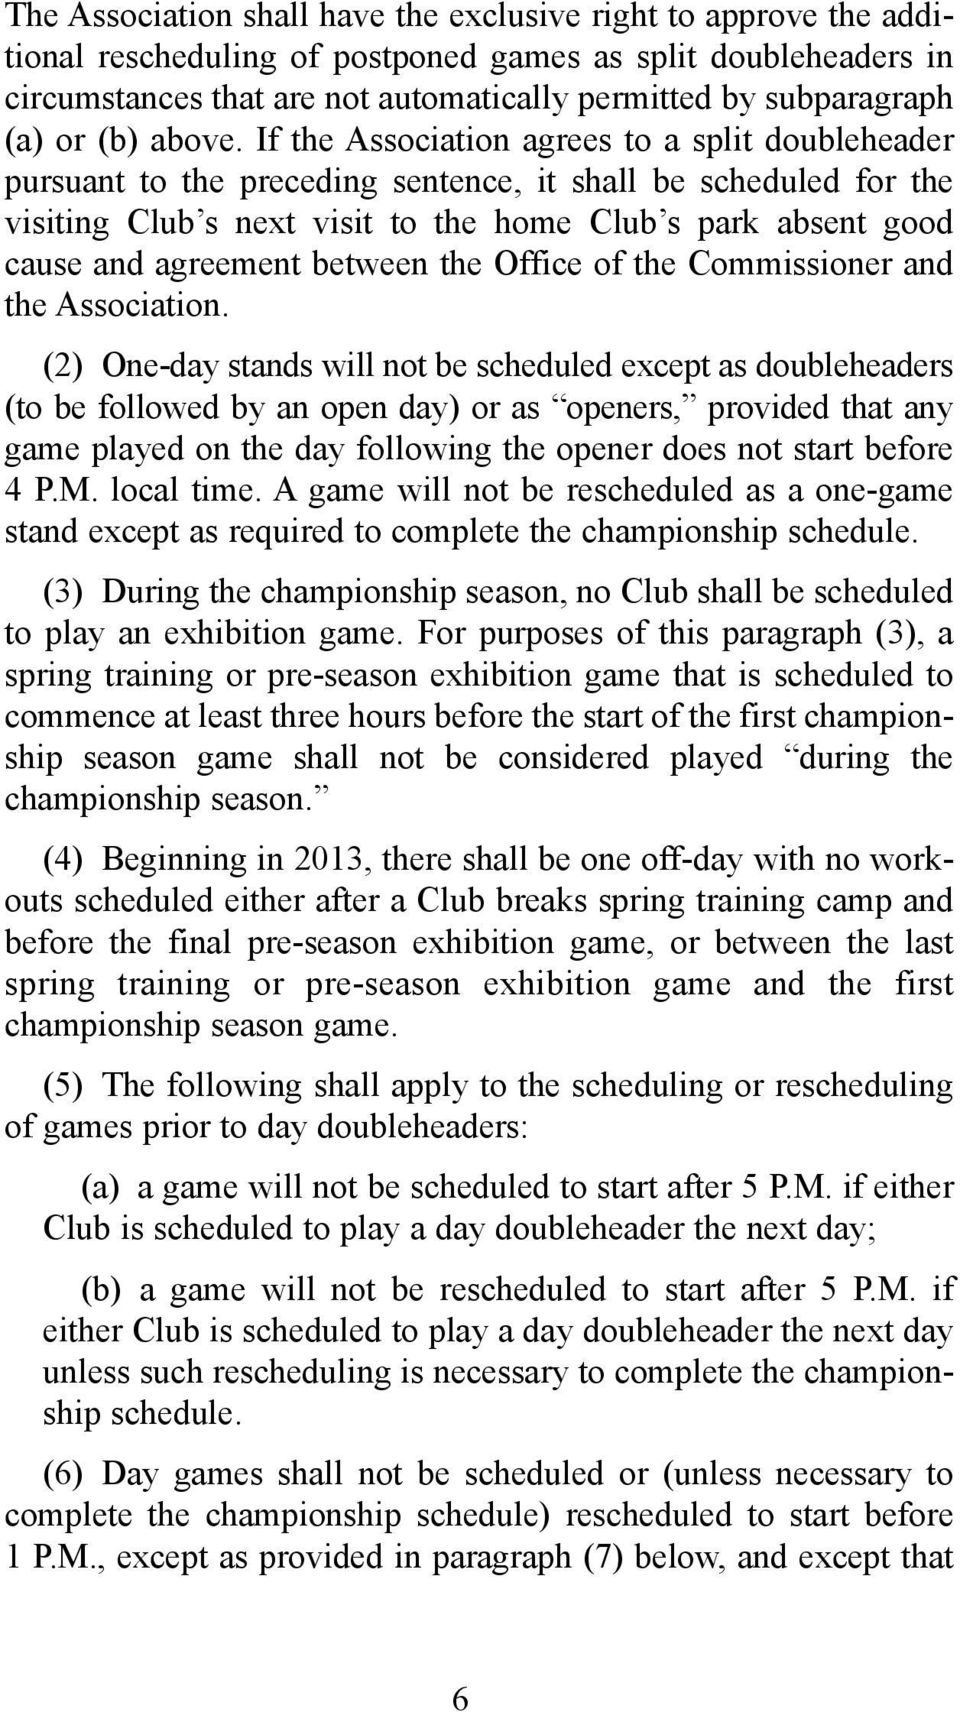 If the Association agrees to a split doubleheader pursuant to the preceding sentence, it shall be scheduled for the visiting Club s next visit to the home Club s park absent good cause and agreement